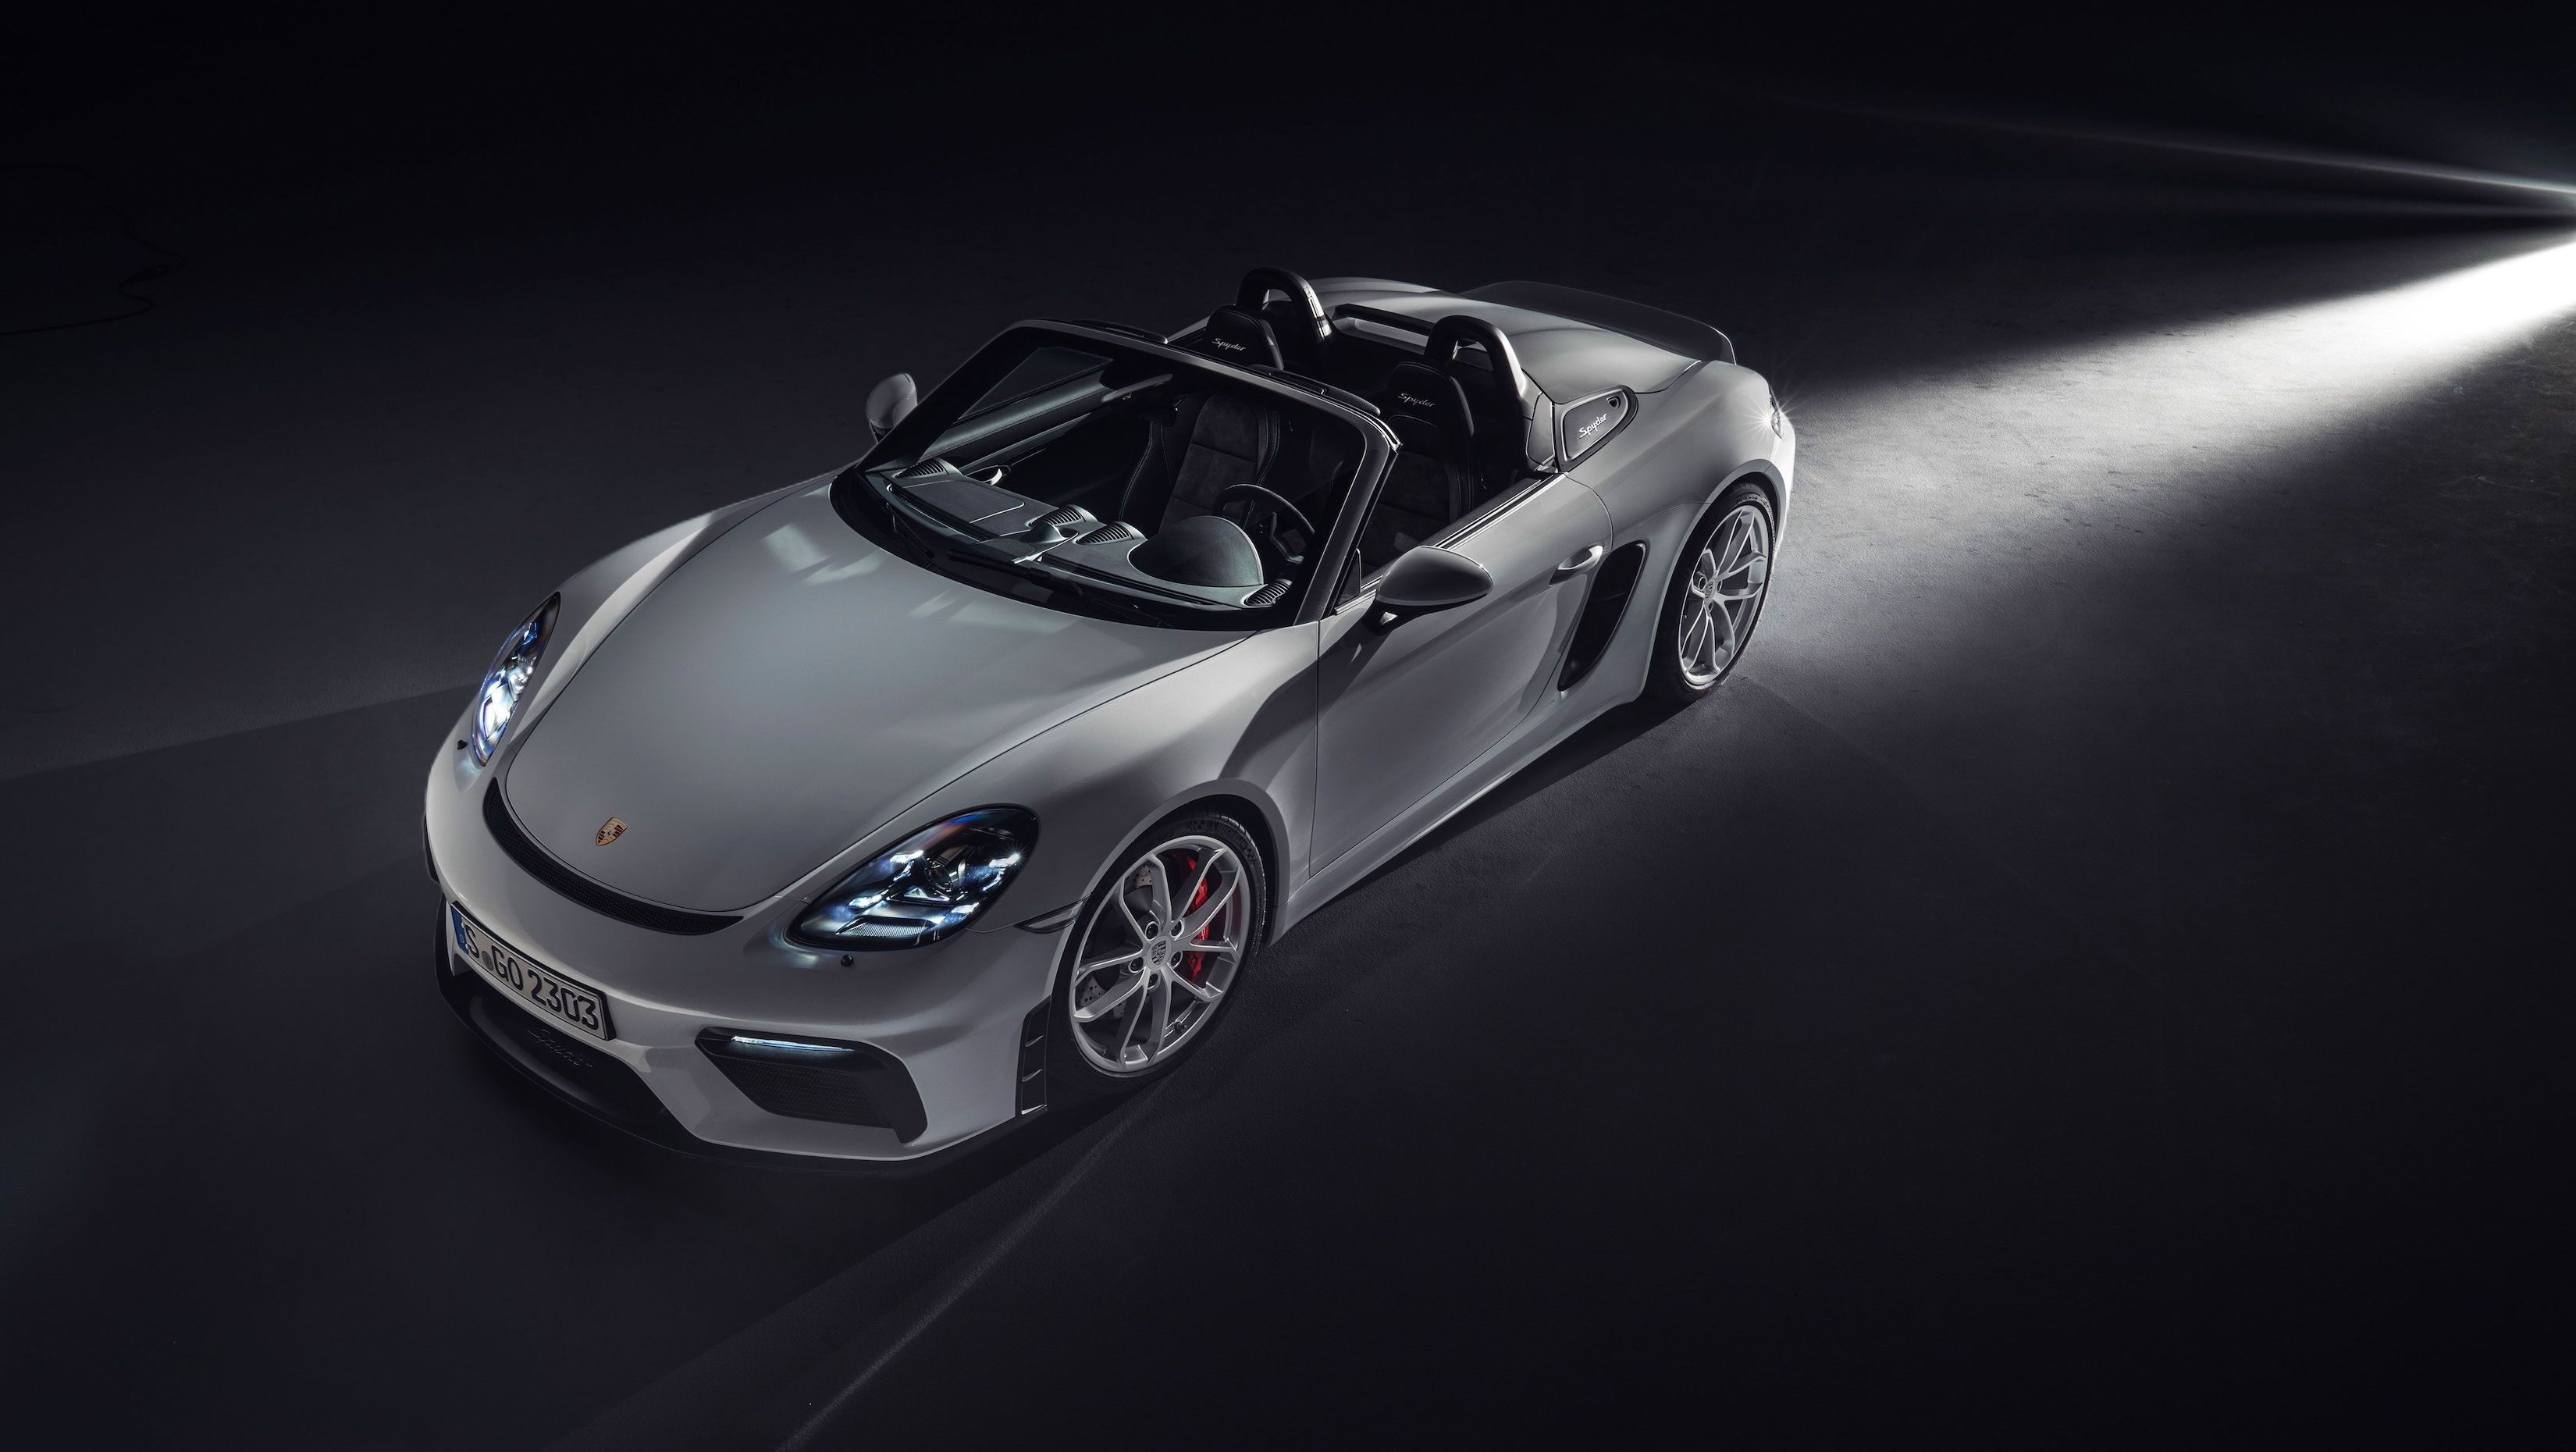 Porsche tops 718 model series with 2020 Spyder and 2020